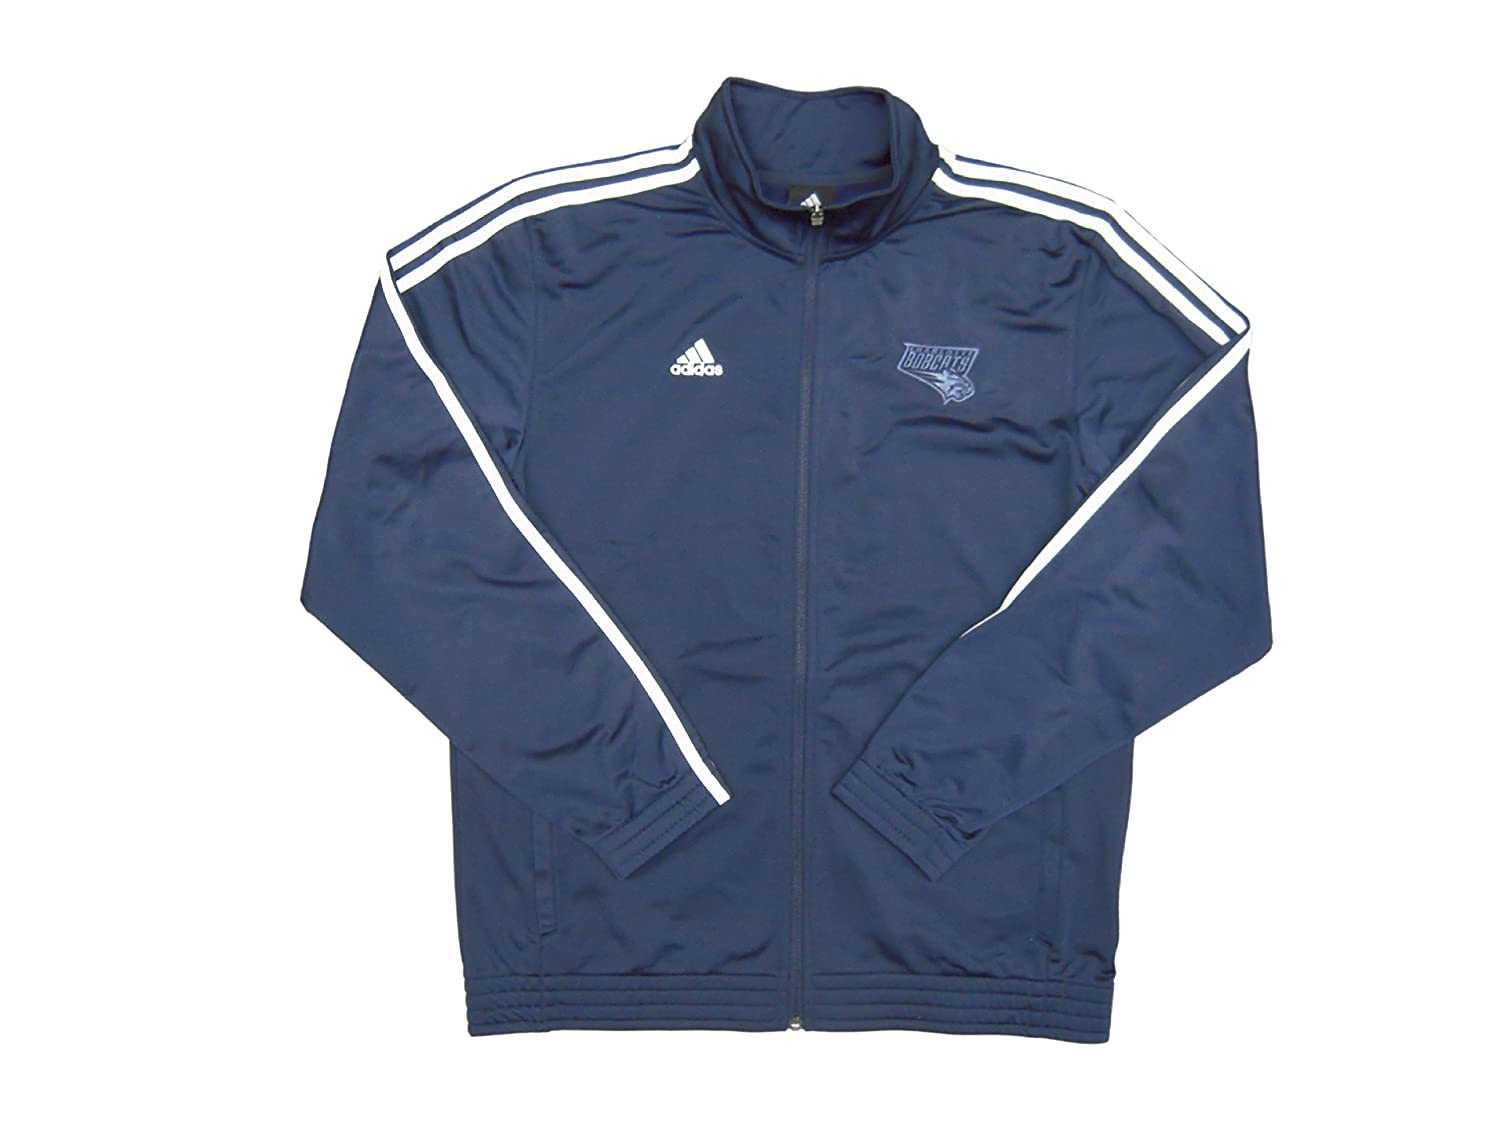 NBA Charlotte Bobcats Team Issued adidas Travel Jacket Navy - Size Medium